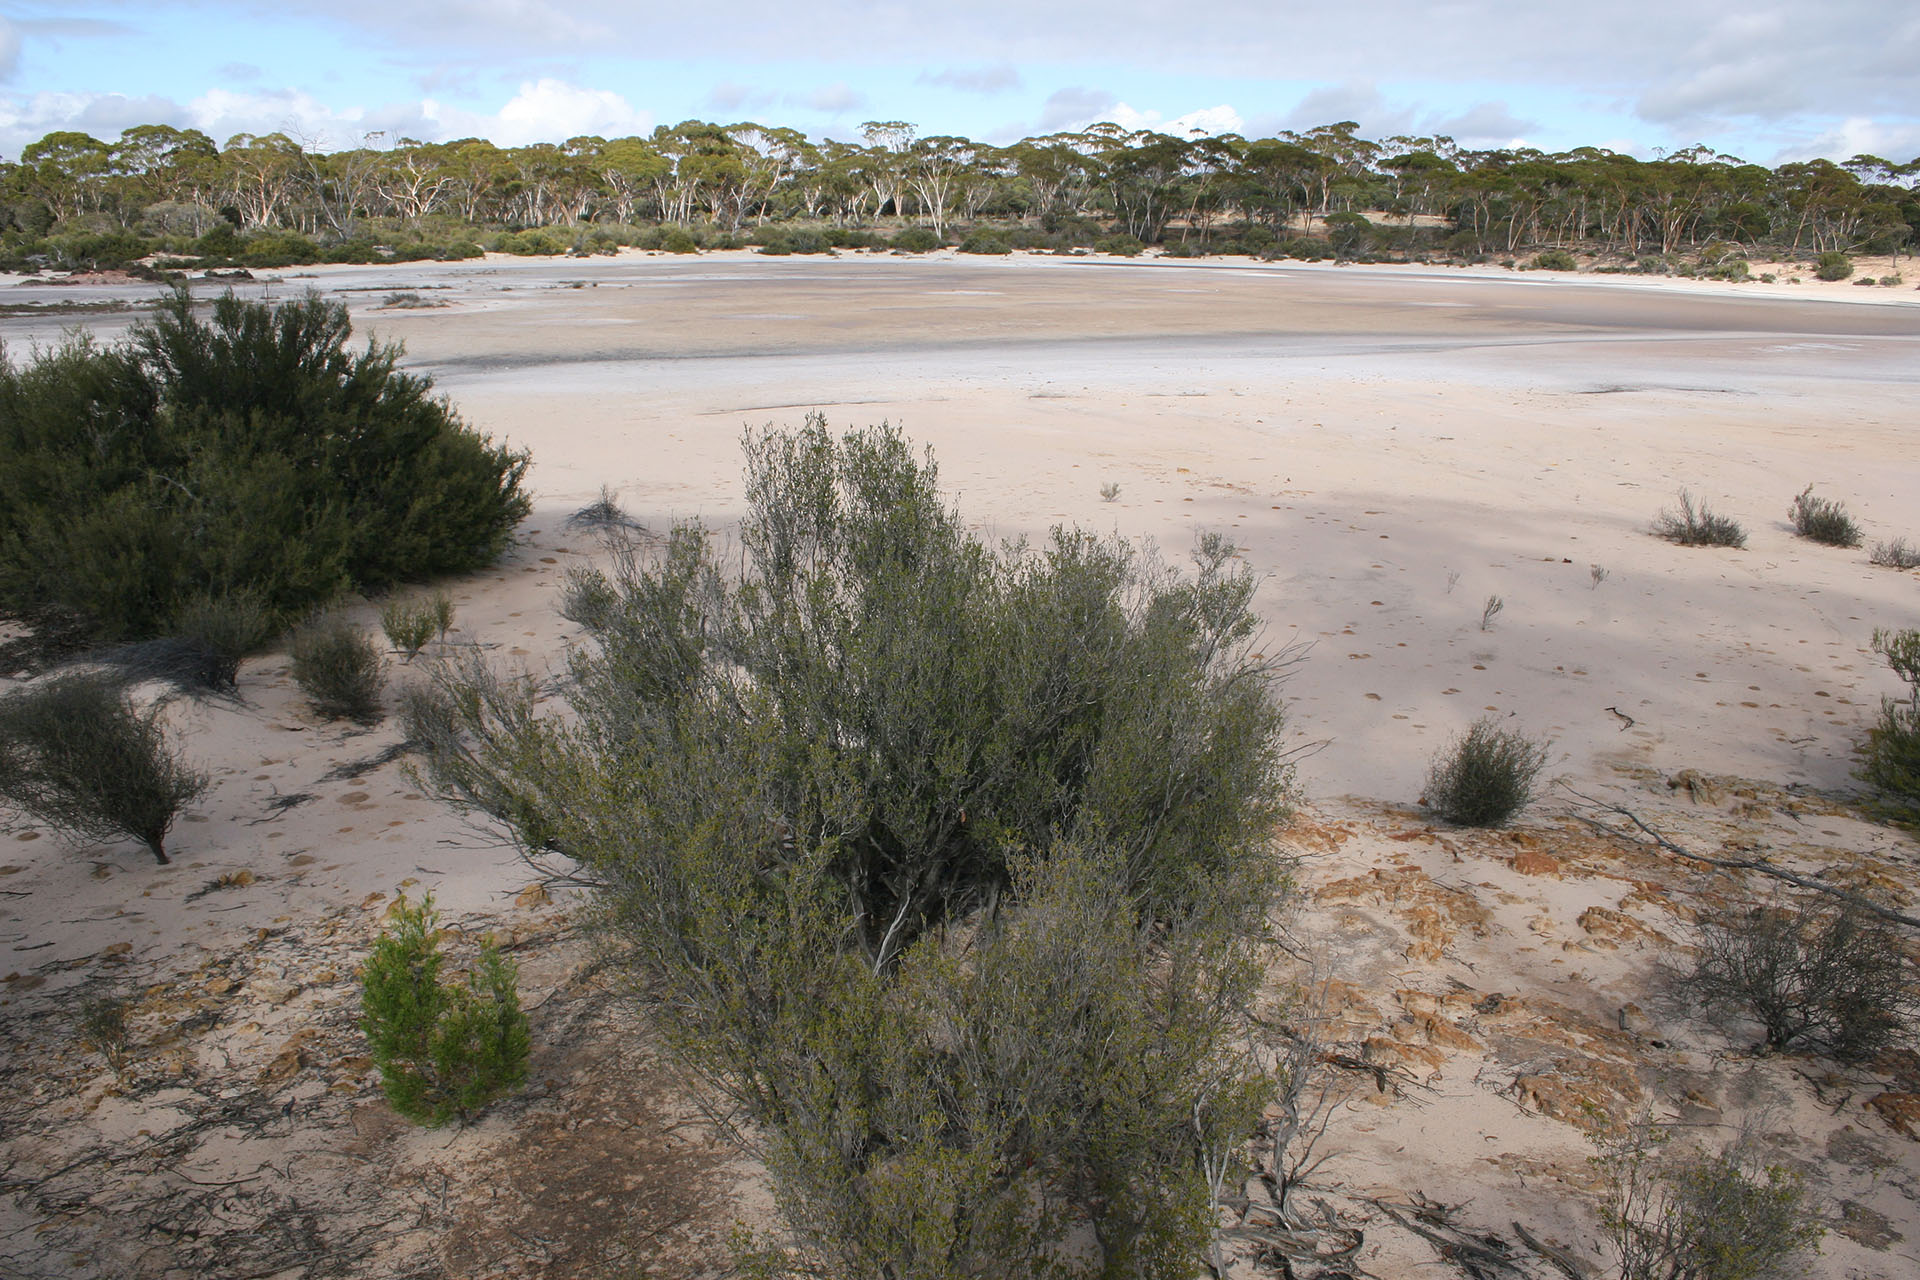 One of the dry lakes.